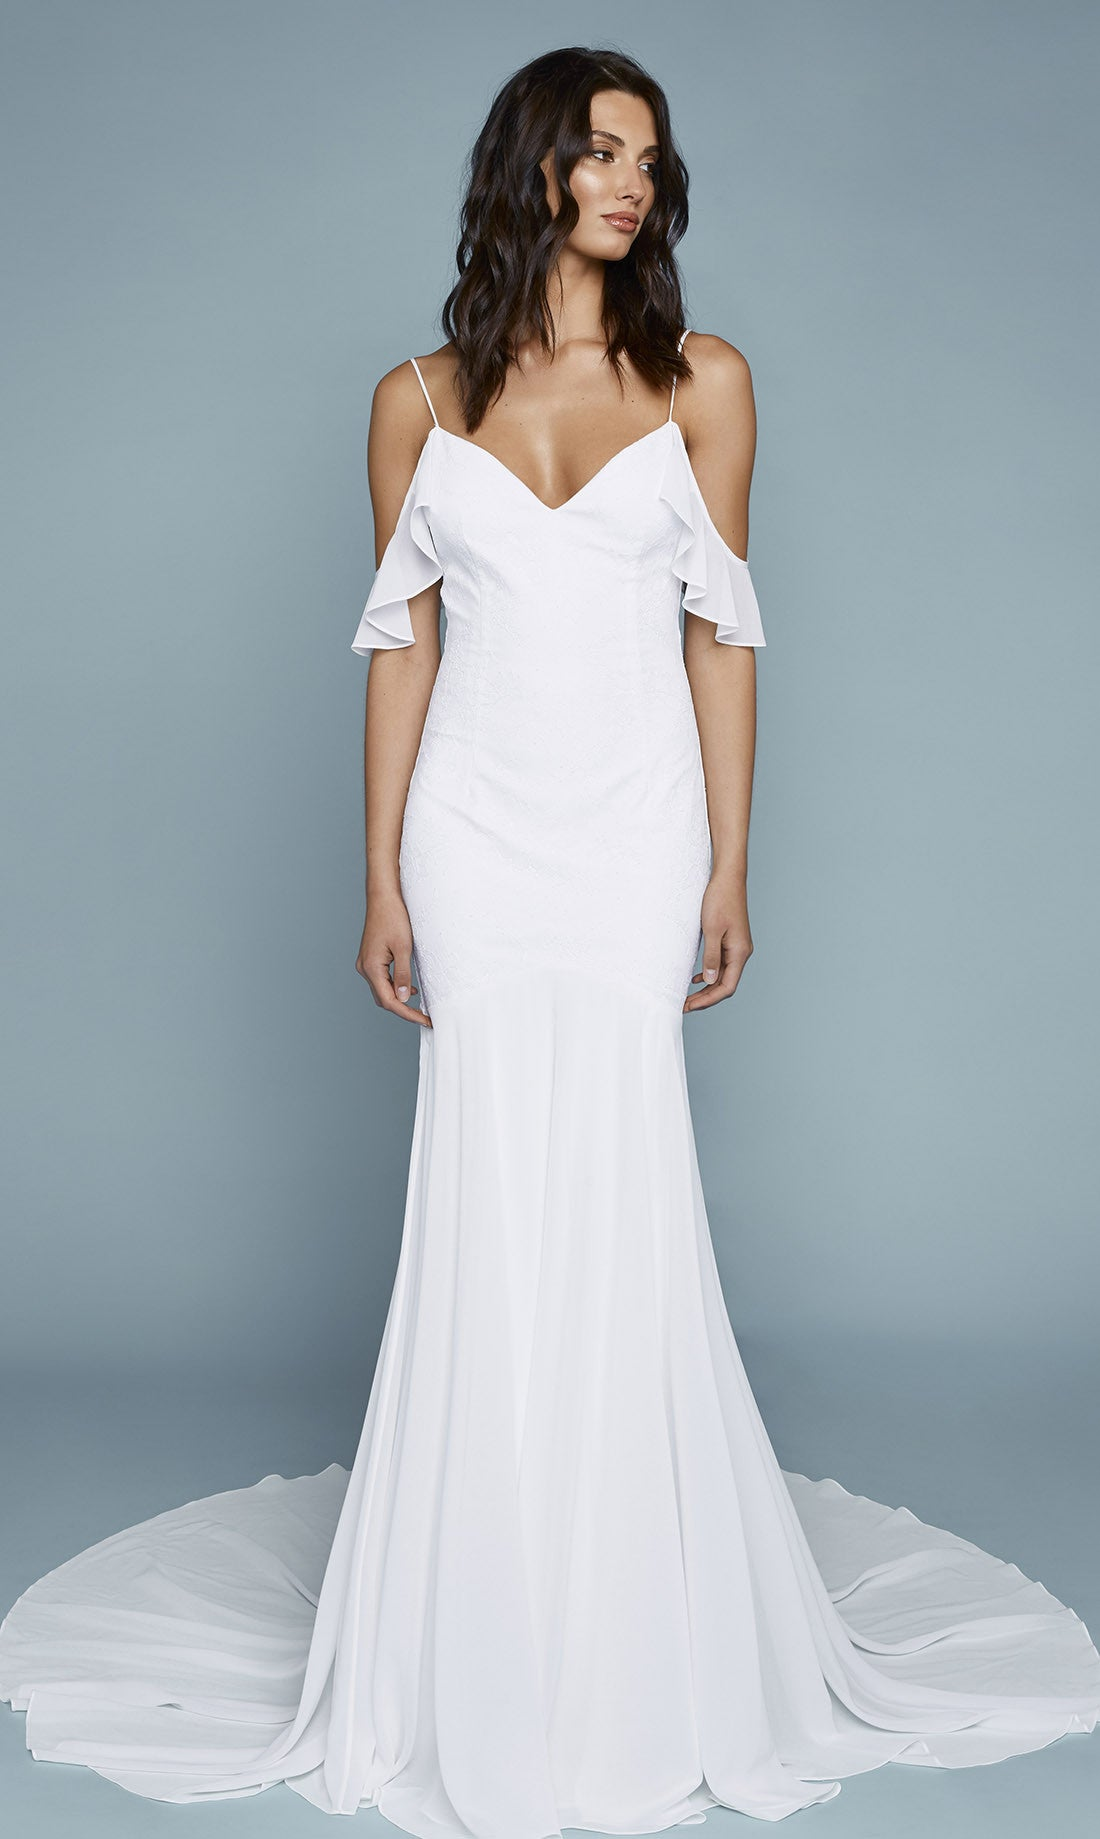 Tulum Chantilly Gown